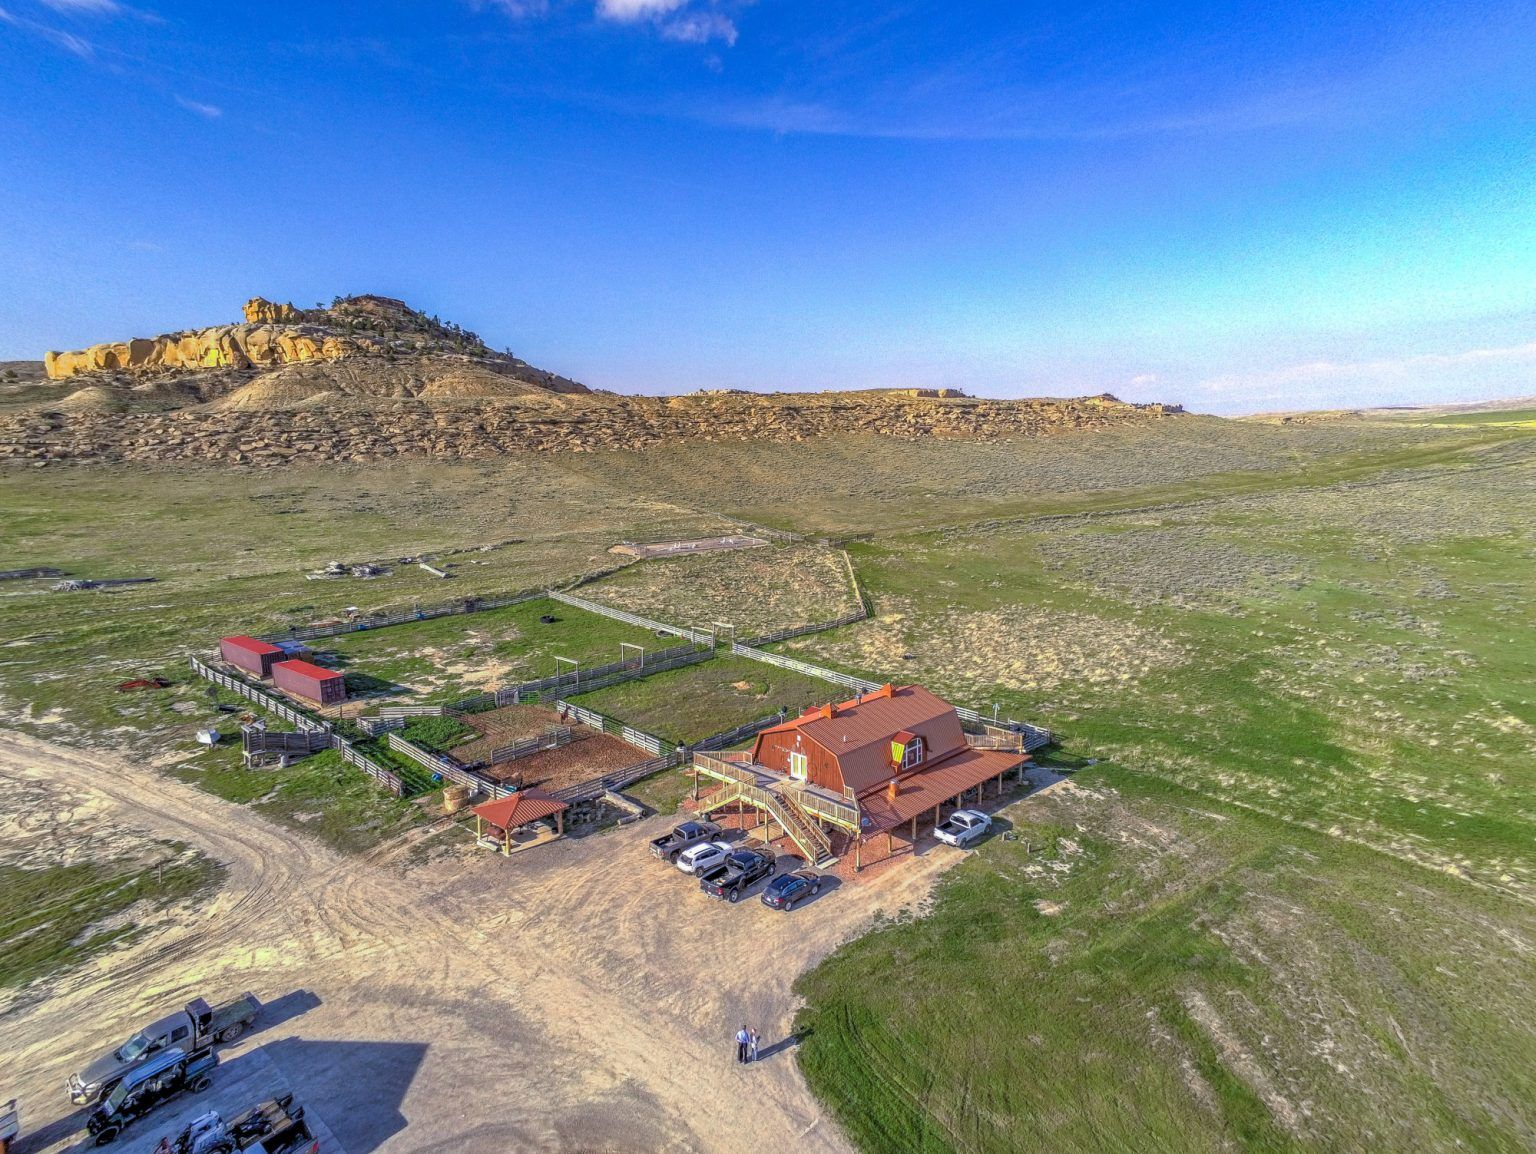 Kanye West S Ranch House In Wyoming In 2020 Ranch House Celebrity Houses Wyoming